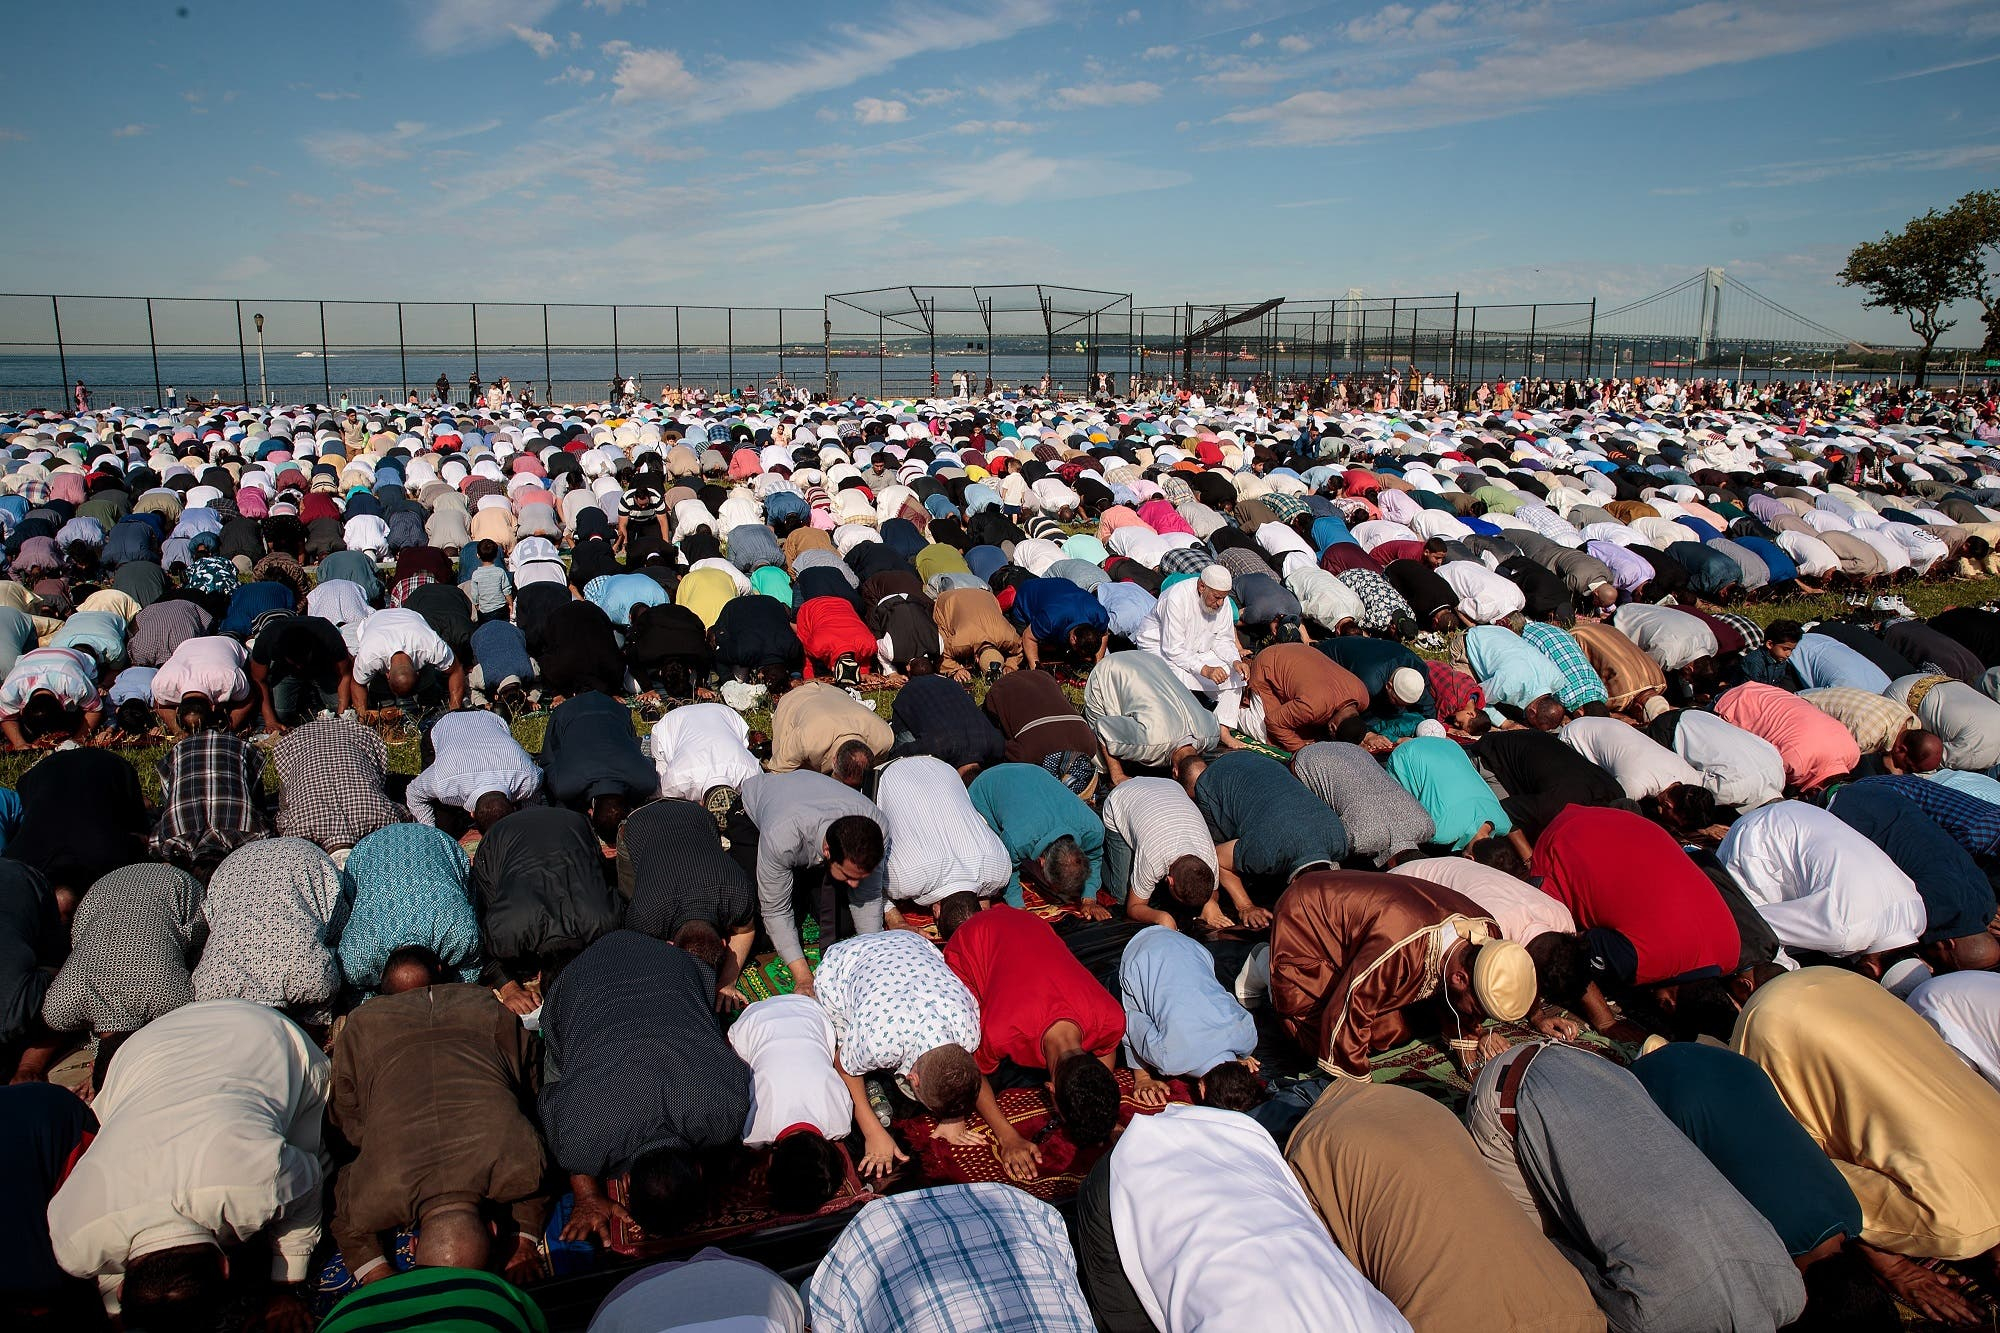 Muslims participate in a group prayer service during Eid al-Fitr in Bensonhurst Park in the Brooklyn borough on June 25, 2017 in New York City. (AFP)